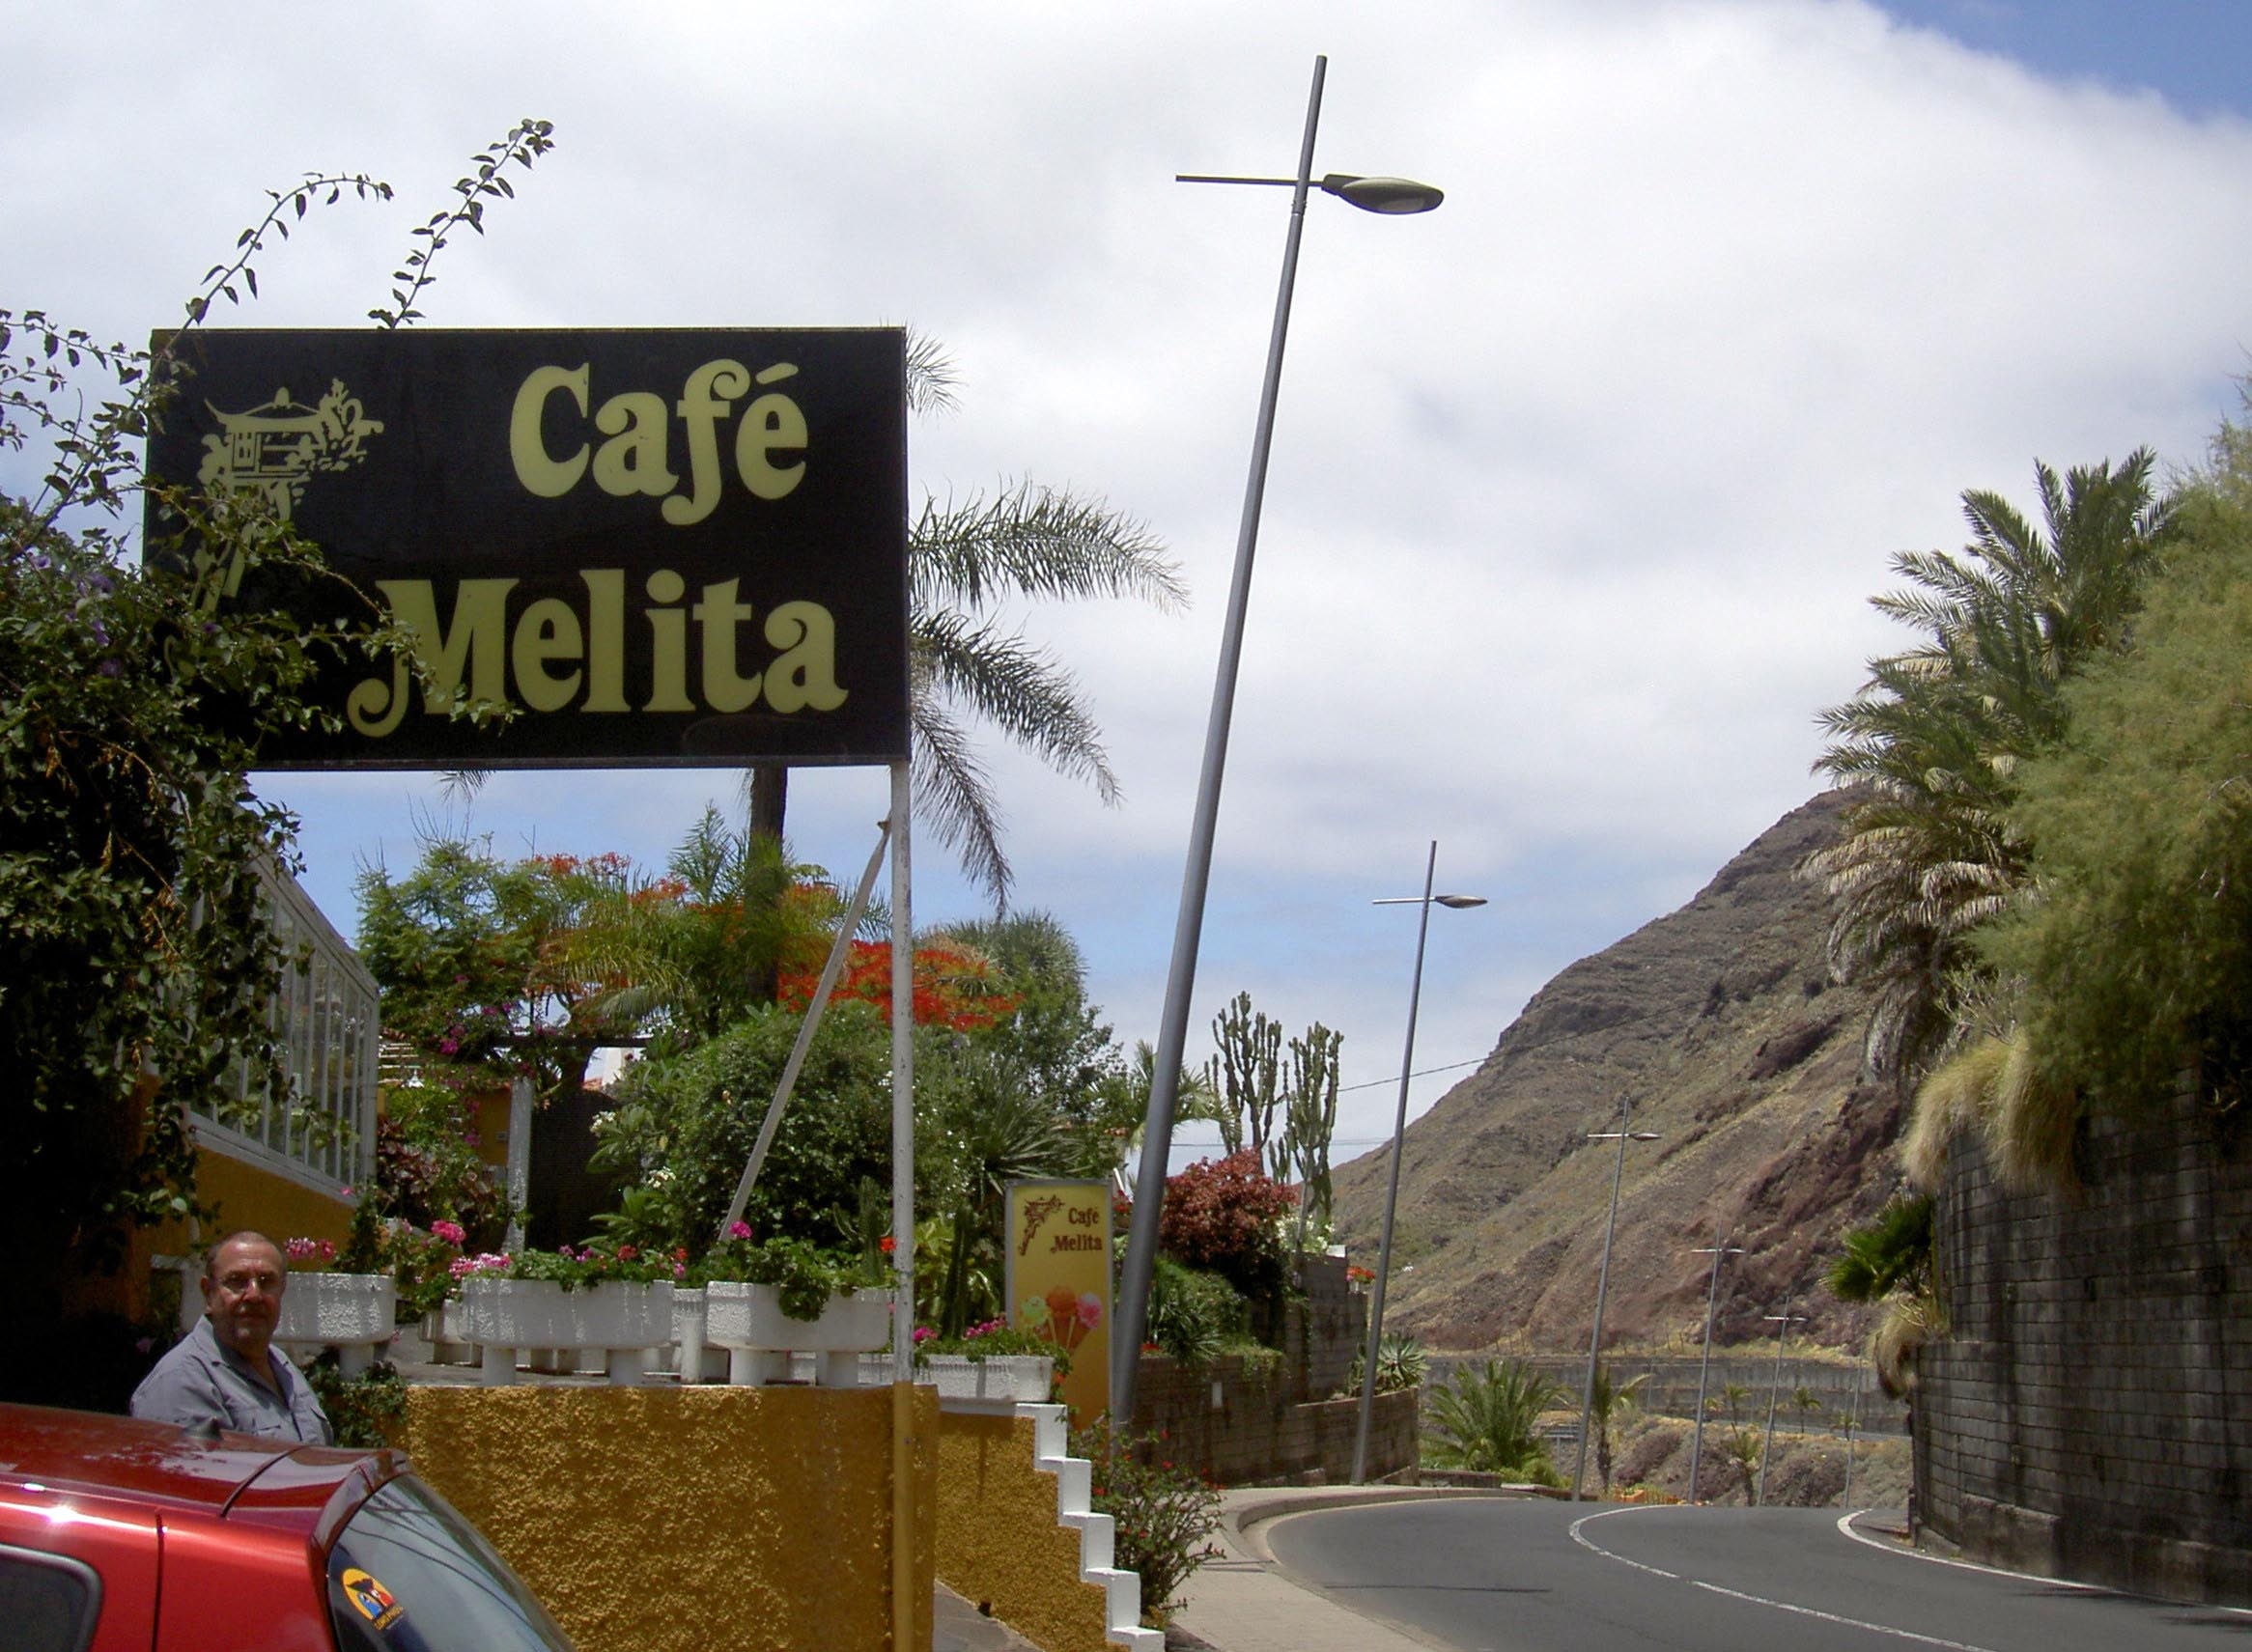 Cafe Melita the founder of the Franchise by that name. It's by Playa beach el Arenal near Punta de Hidalgo Tenerife known for good cakes and Melitta Filter Coffee.